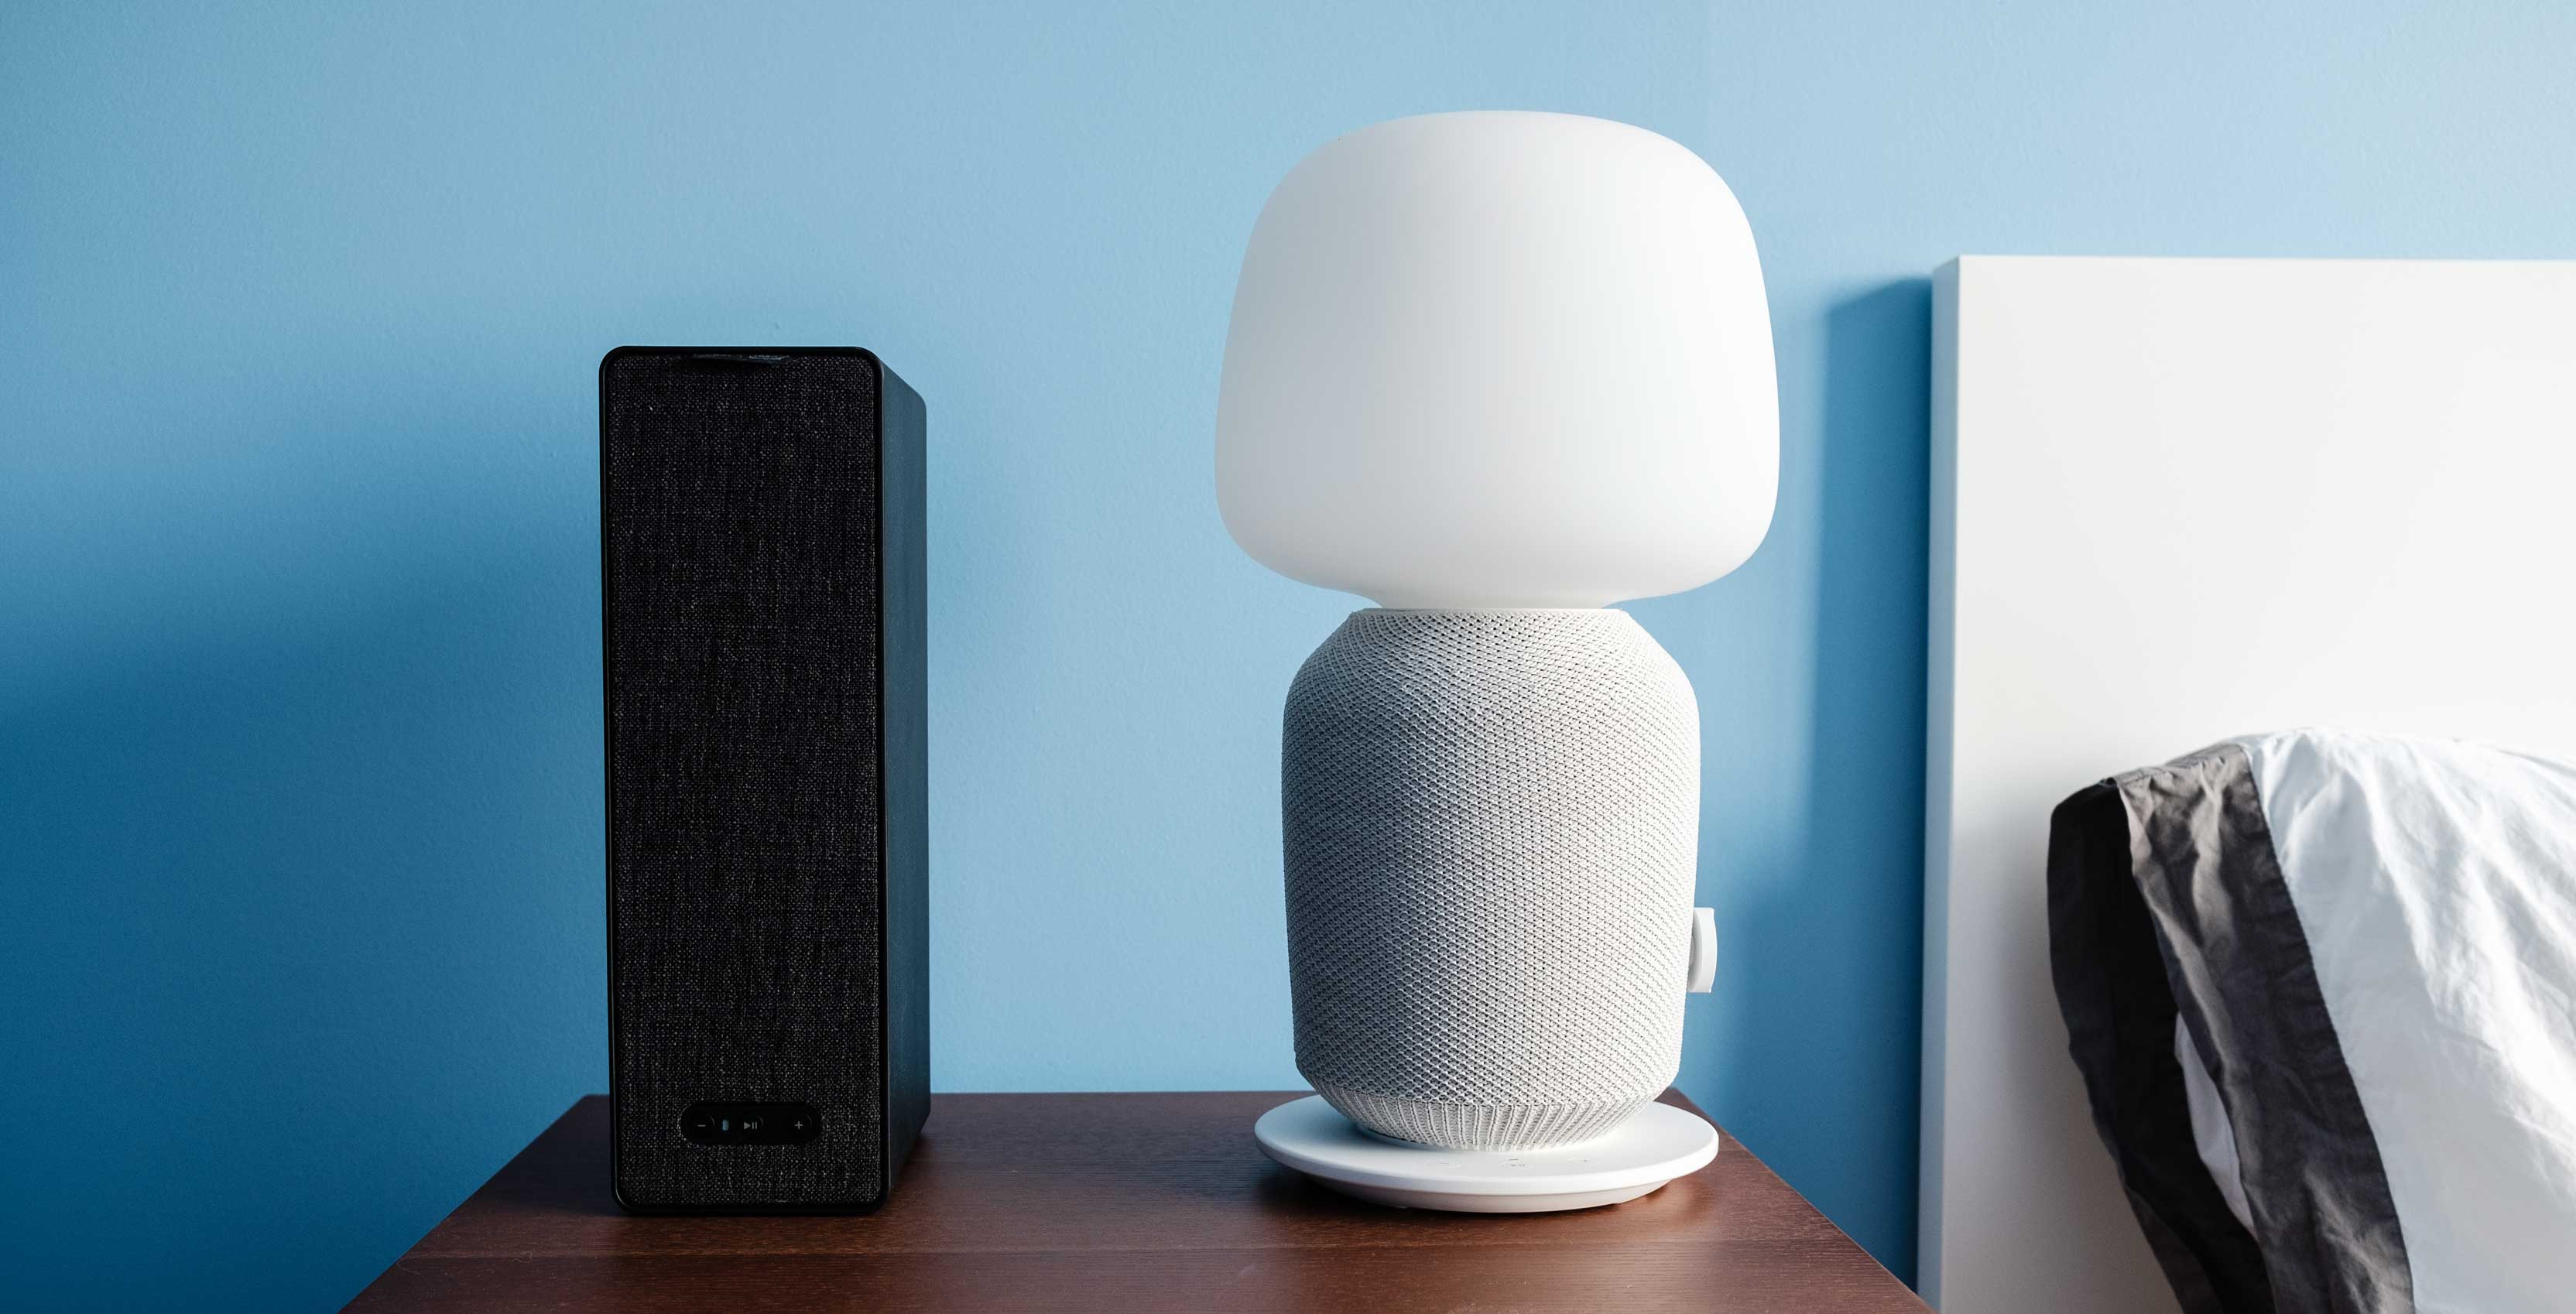 Sonos Ikea Symfonisk Review Speakers First Home Decor Second